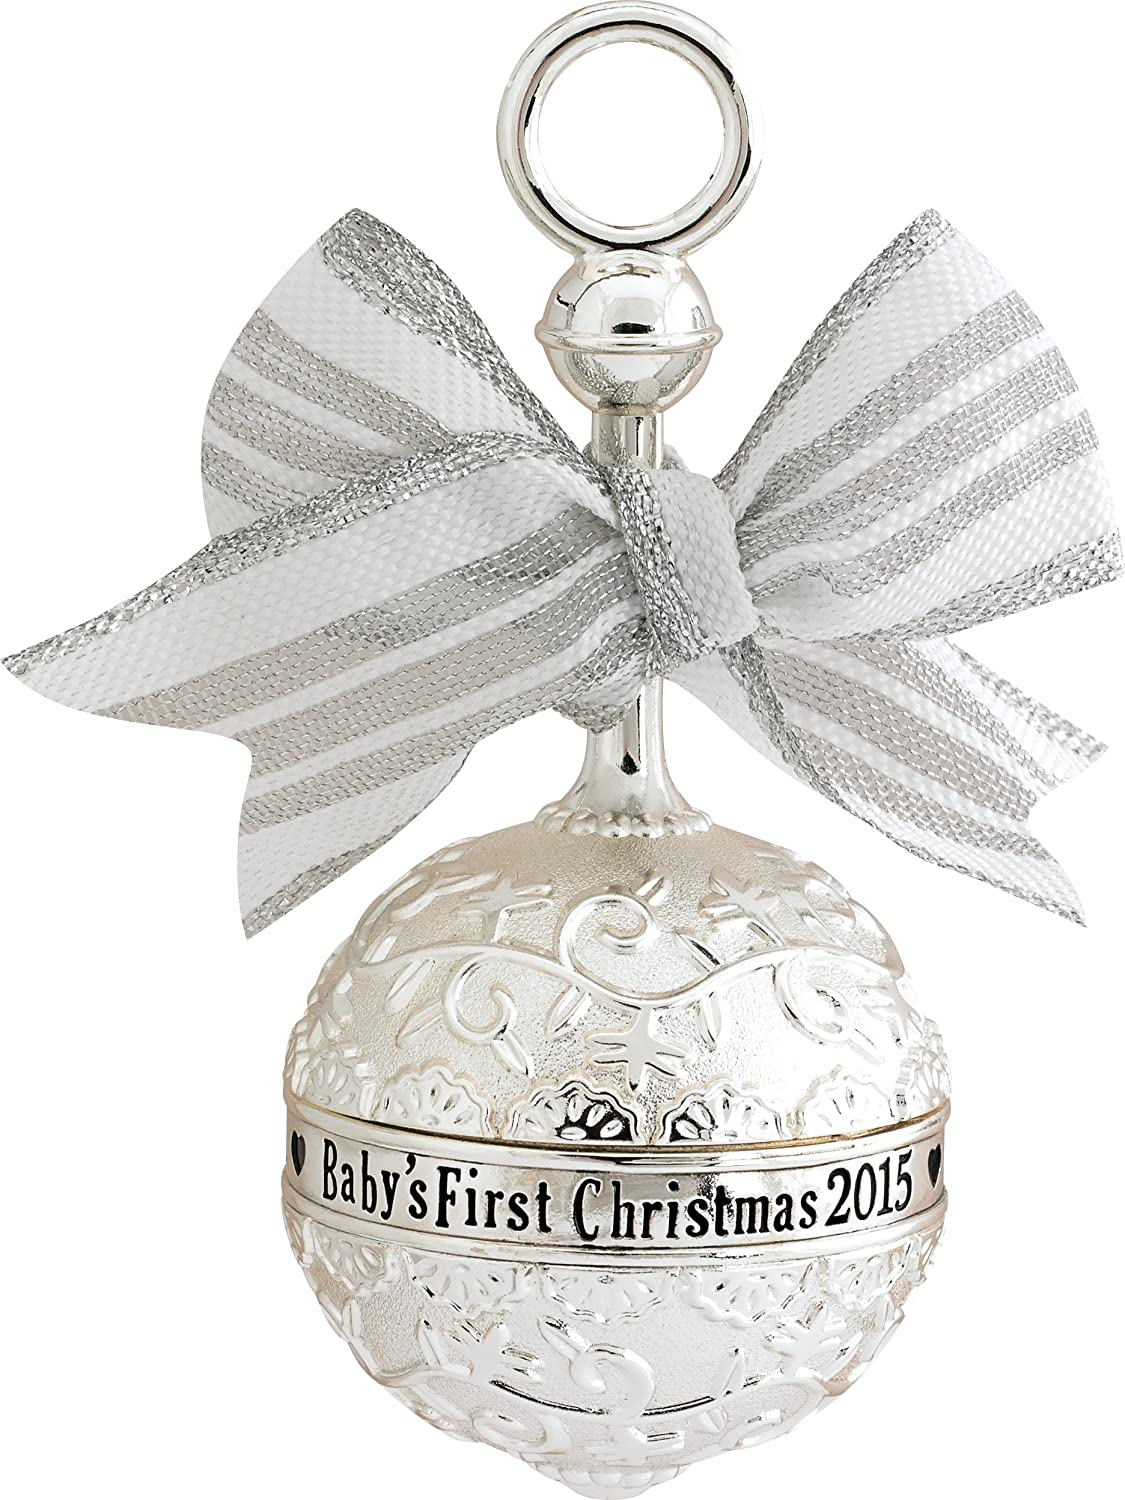 2015 Baby's First Christmas Rattle Carlton Ornament